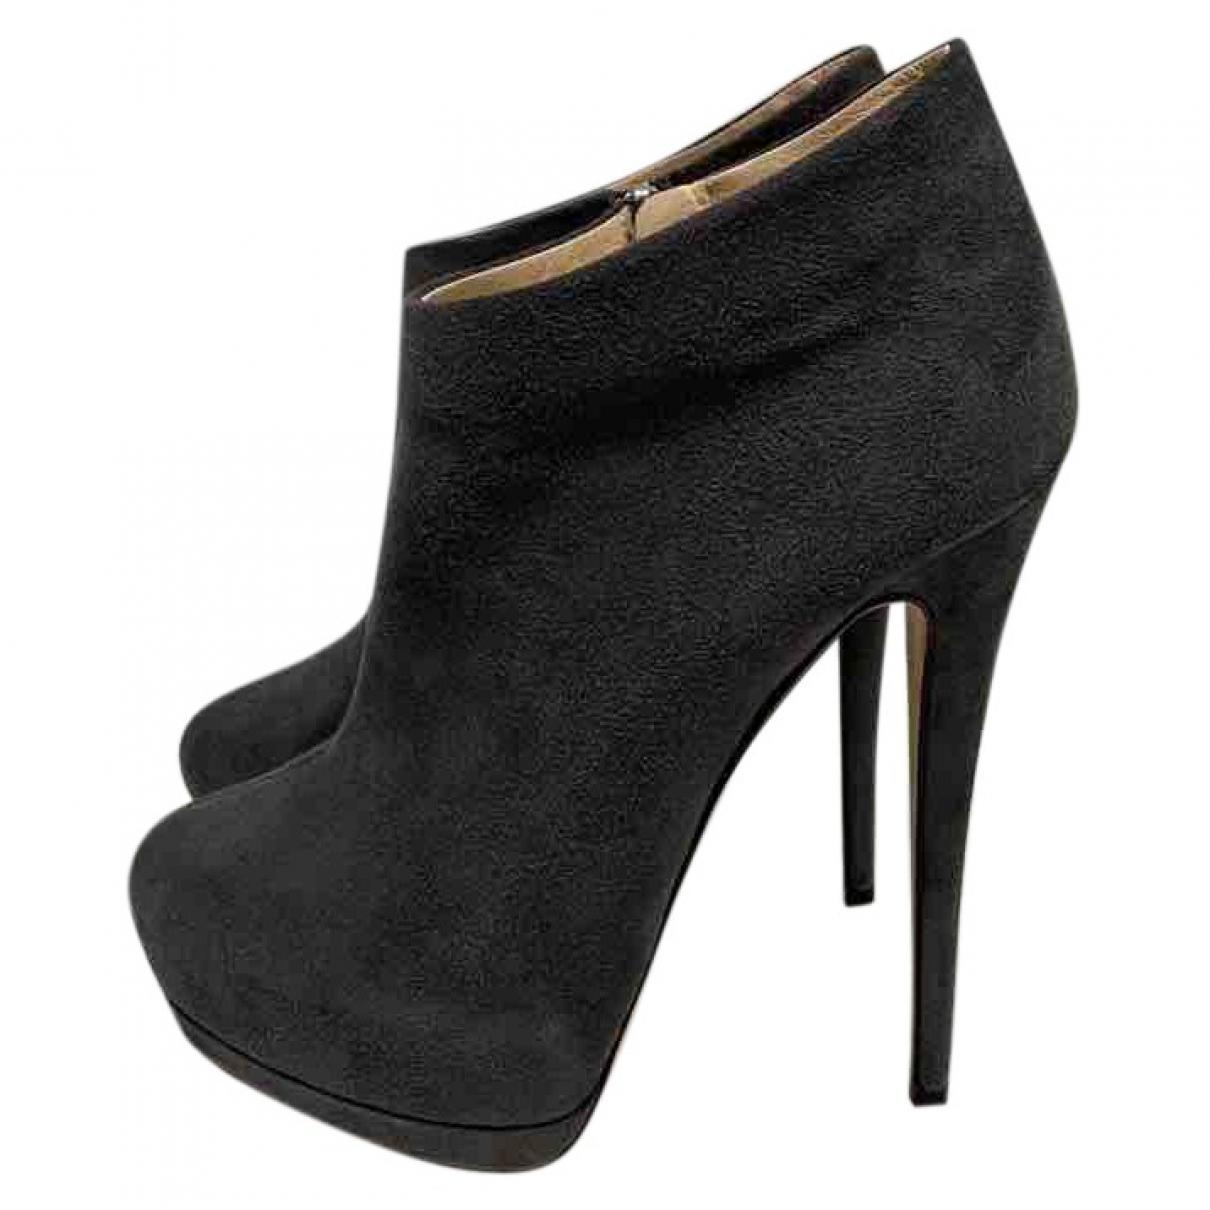 499133bfe Giuseppe Zanotti. Women's Gray Ankle Boots. $302 From Vestiaire Collective